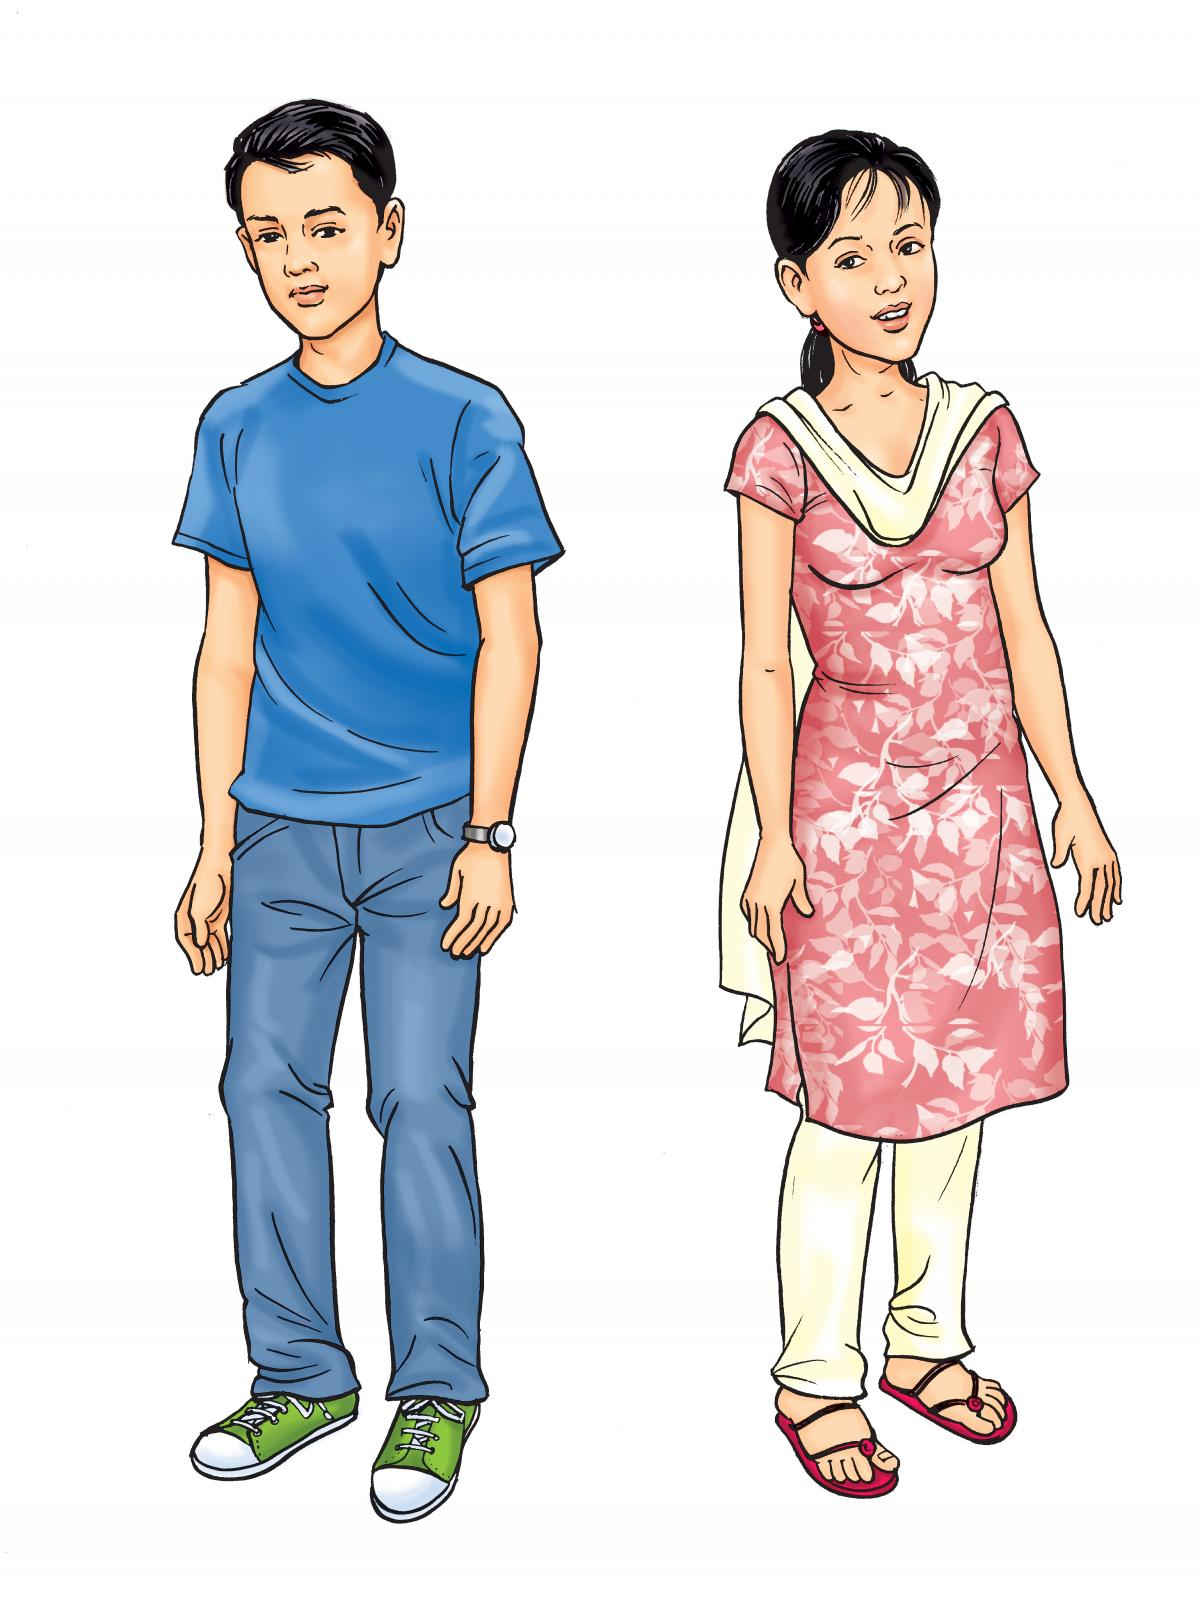 People - Adolescent boy and girl - 01A - Nepal